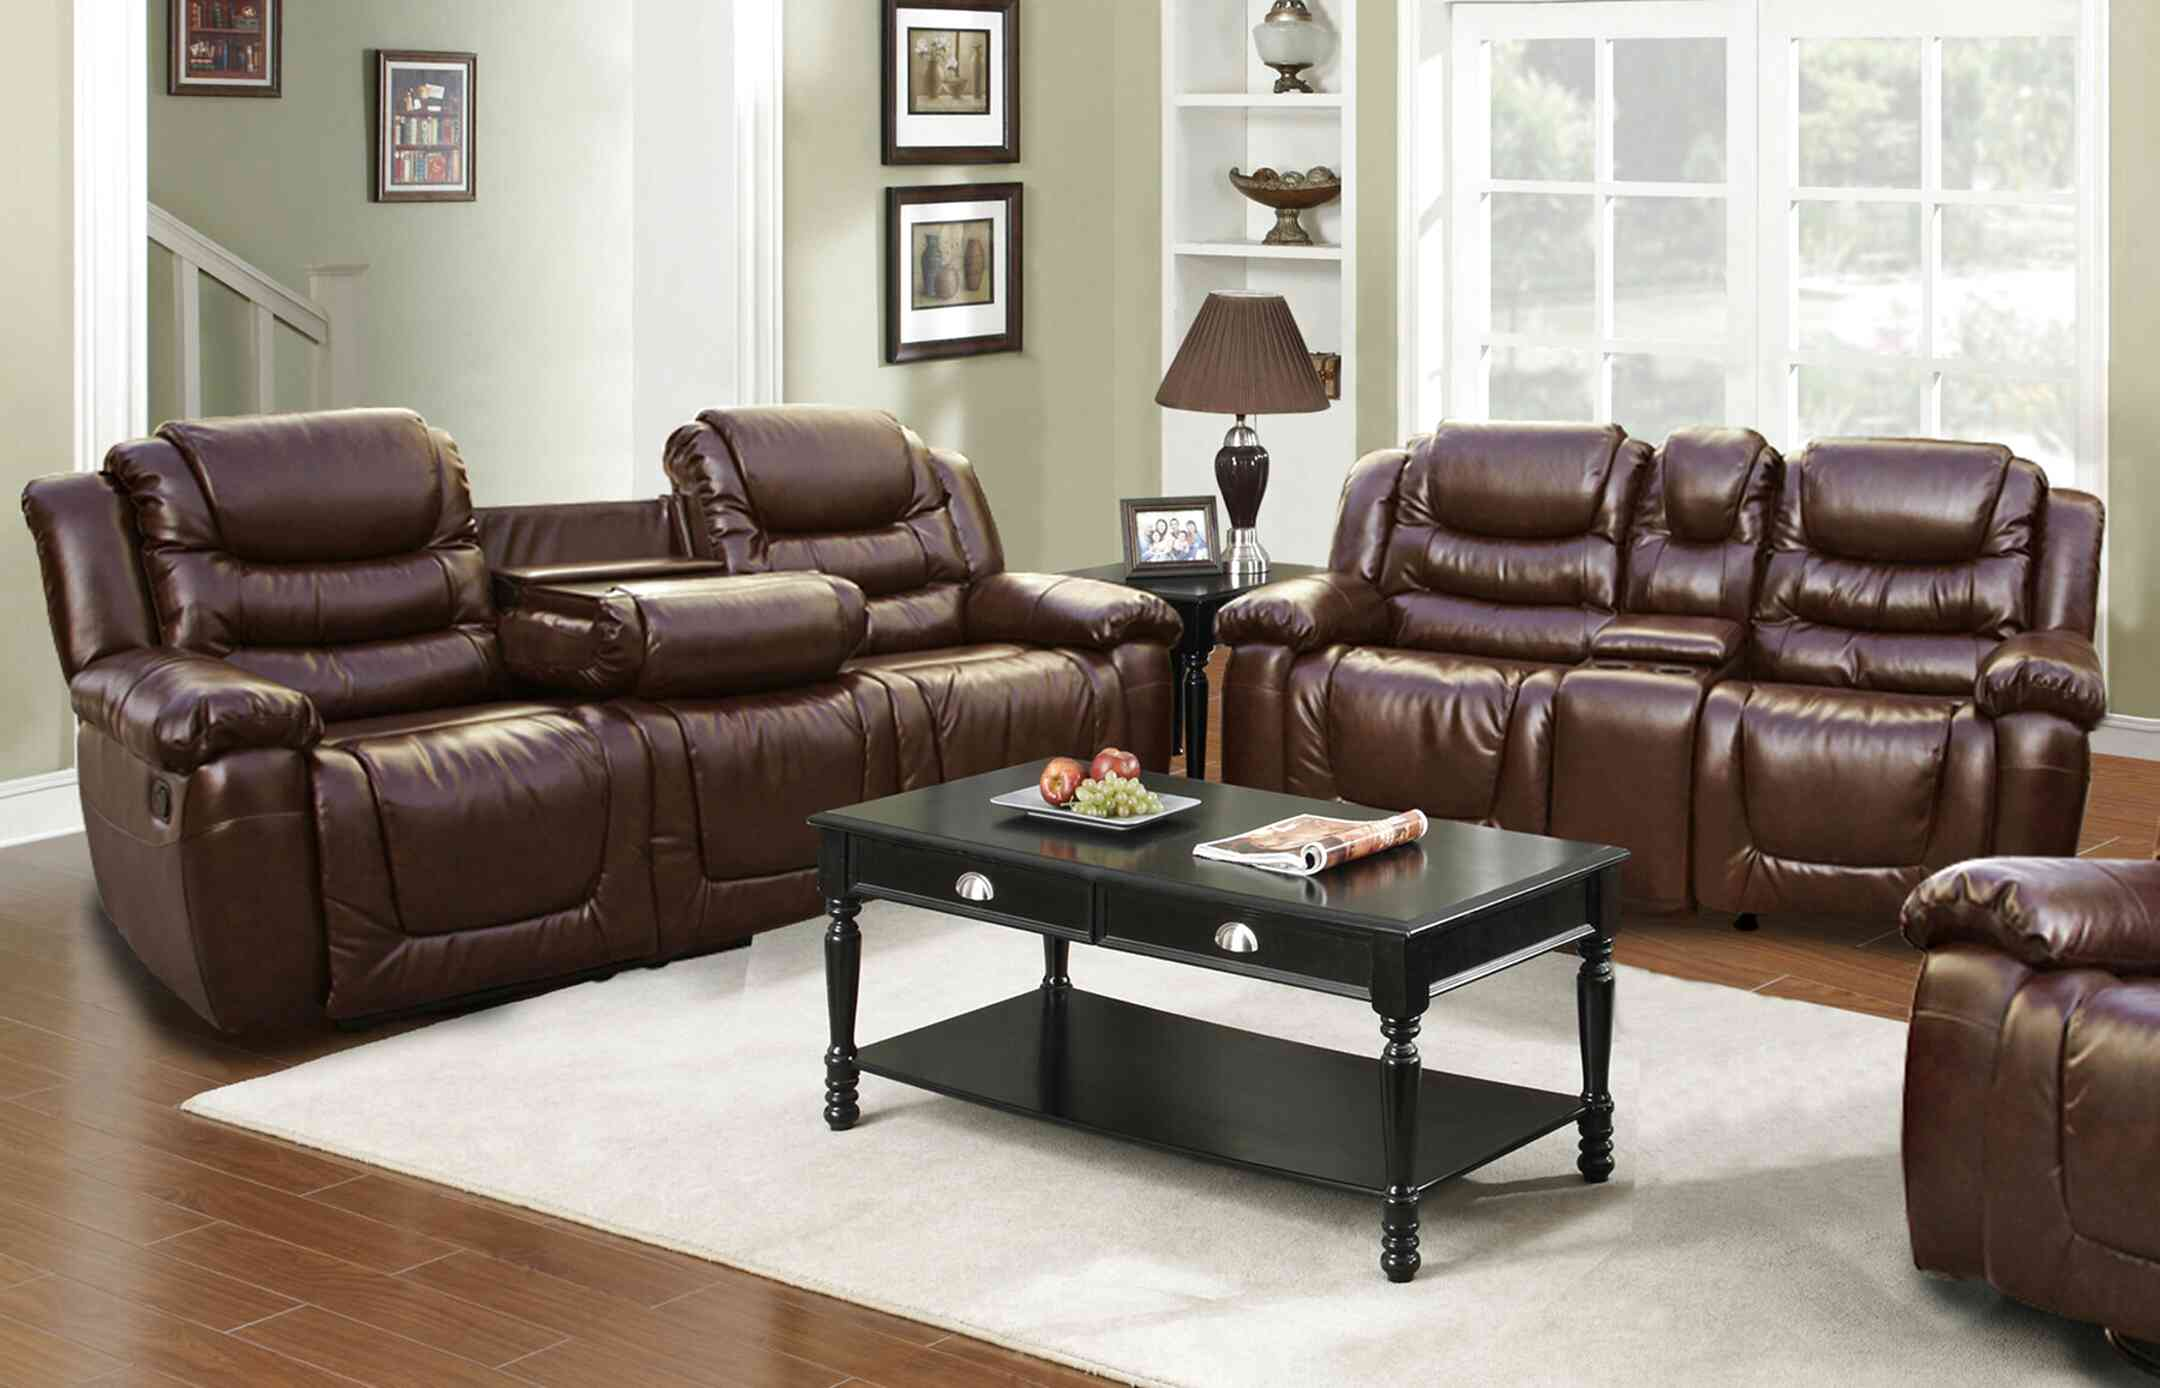 2 piece living room couch set for sale